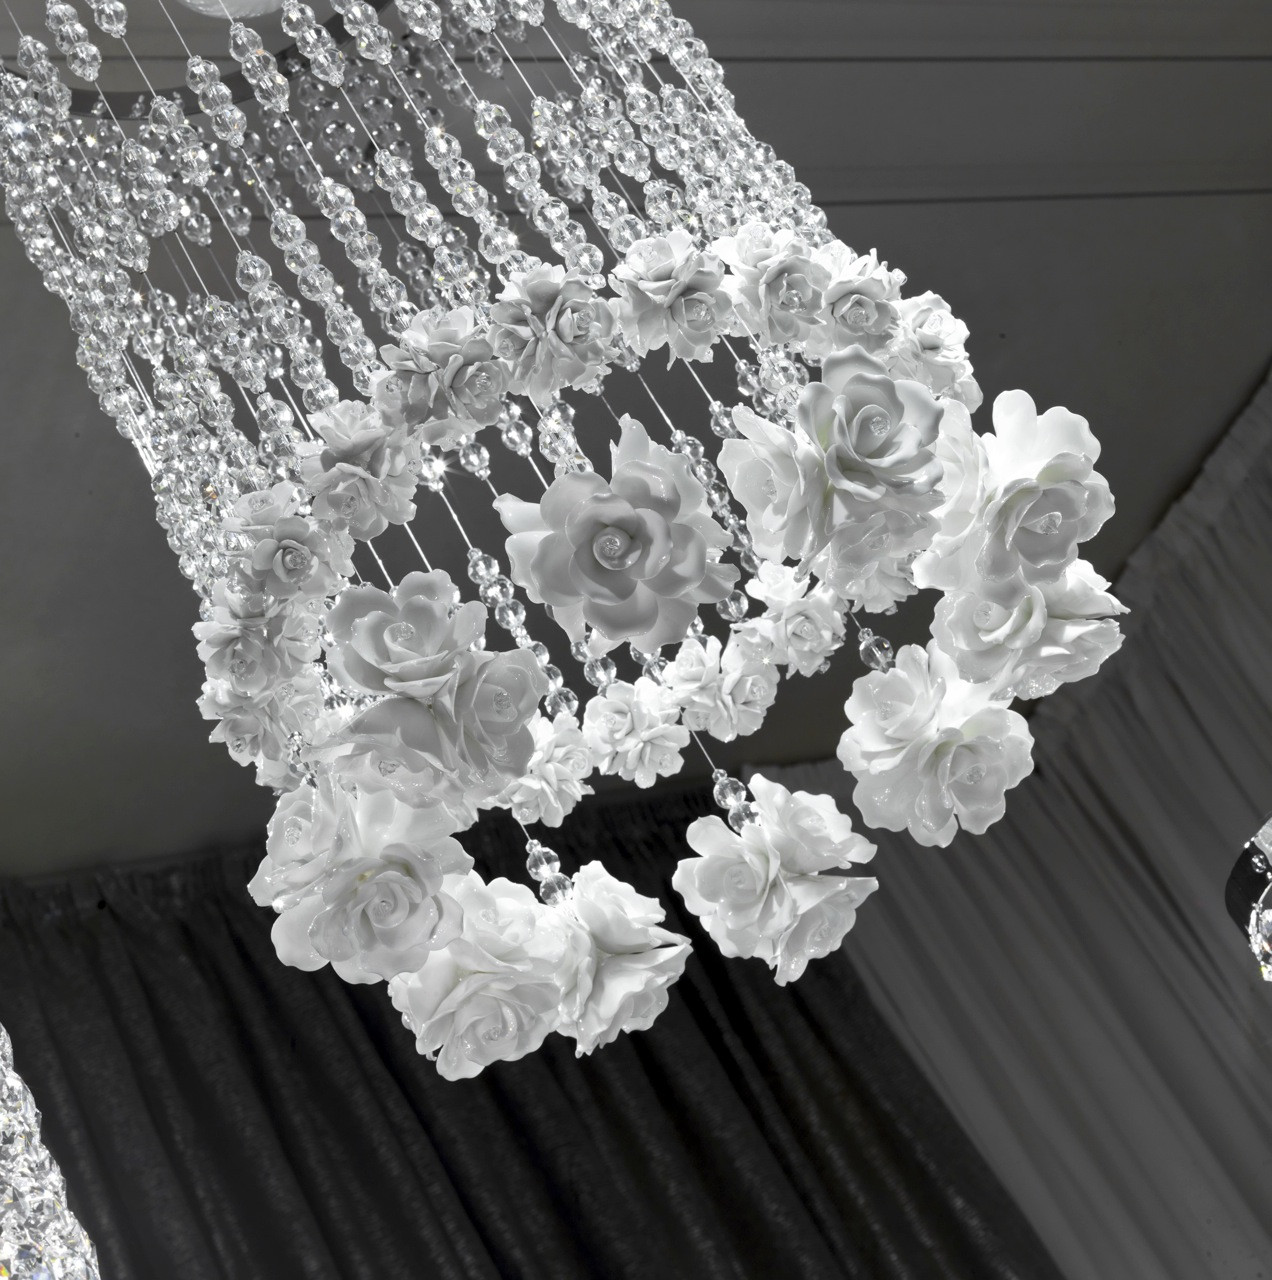 RAINDROPS AND ROSES CHANDELIER